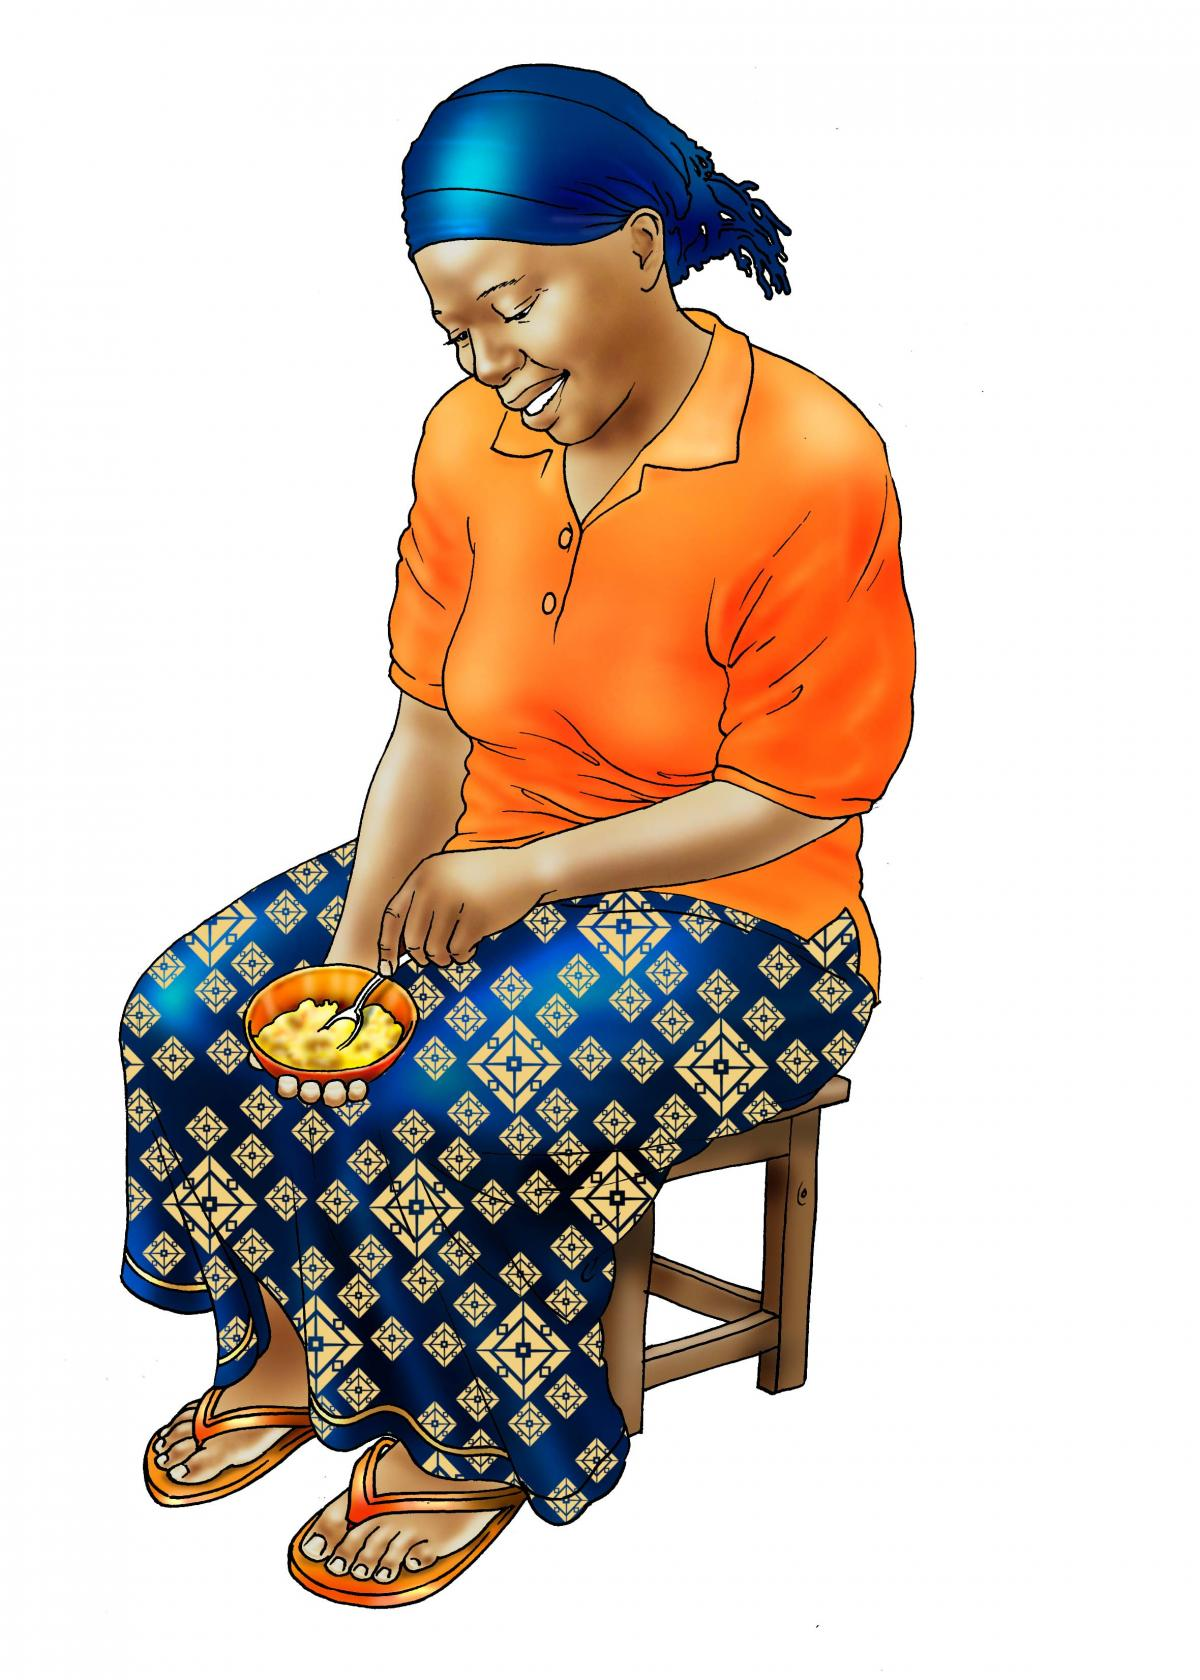 Family - Mother preparing complementary food - 01 - Non-country specific